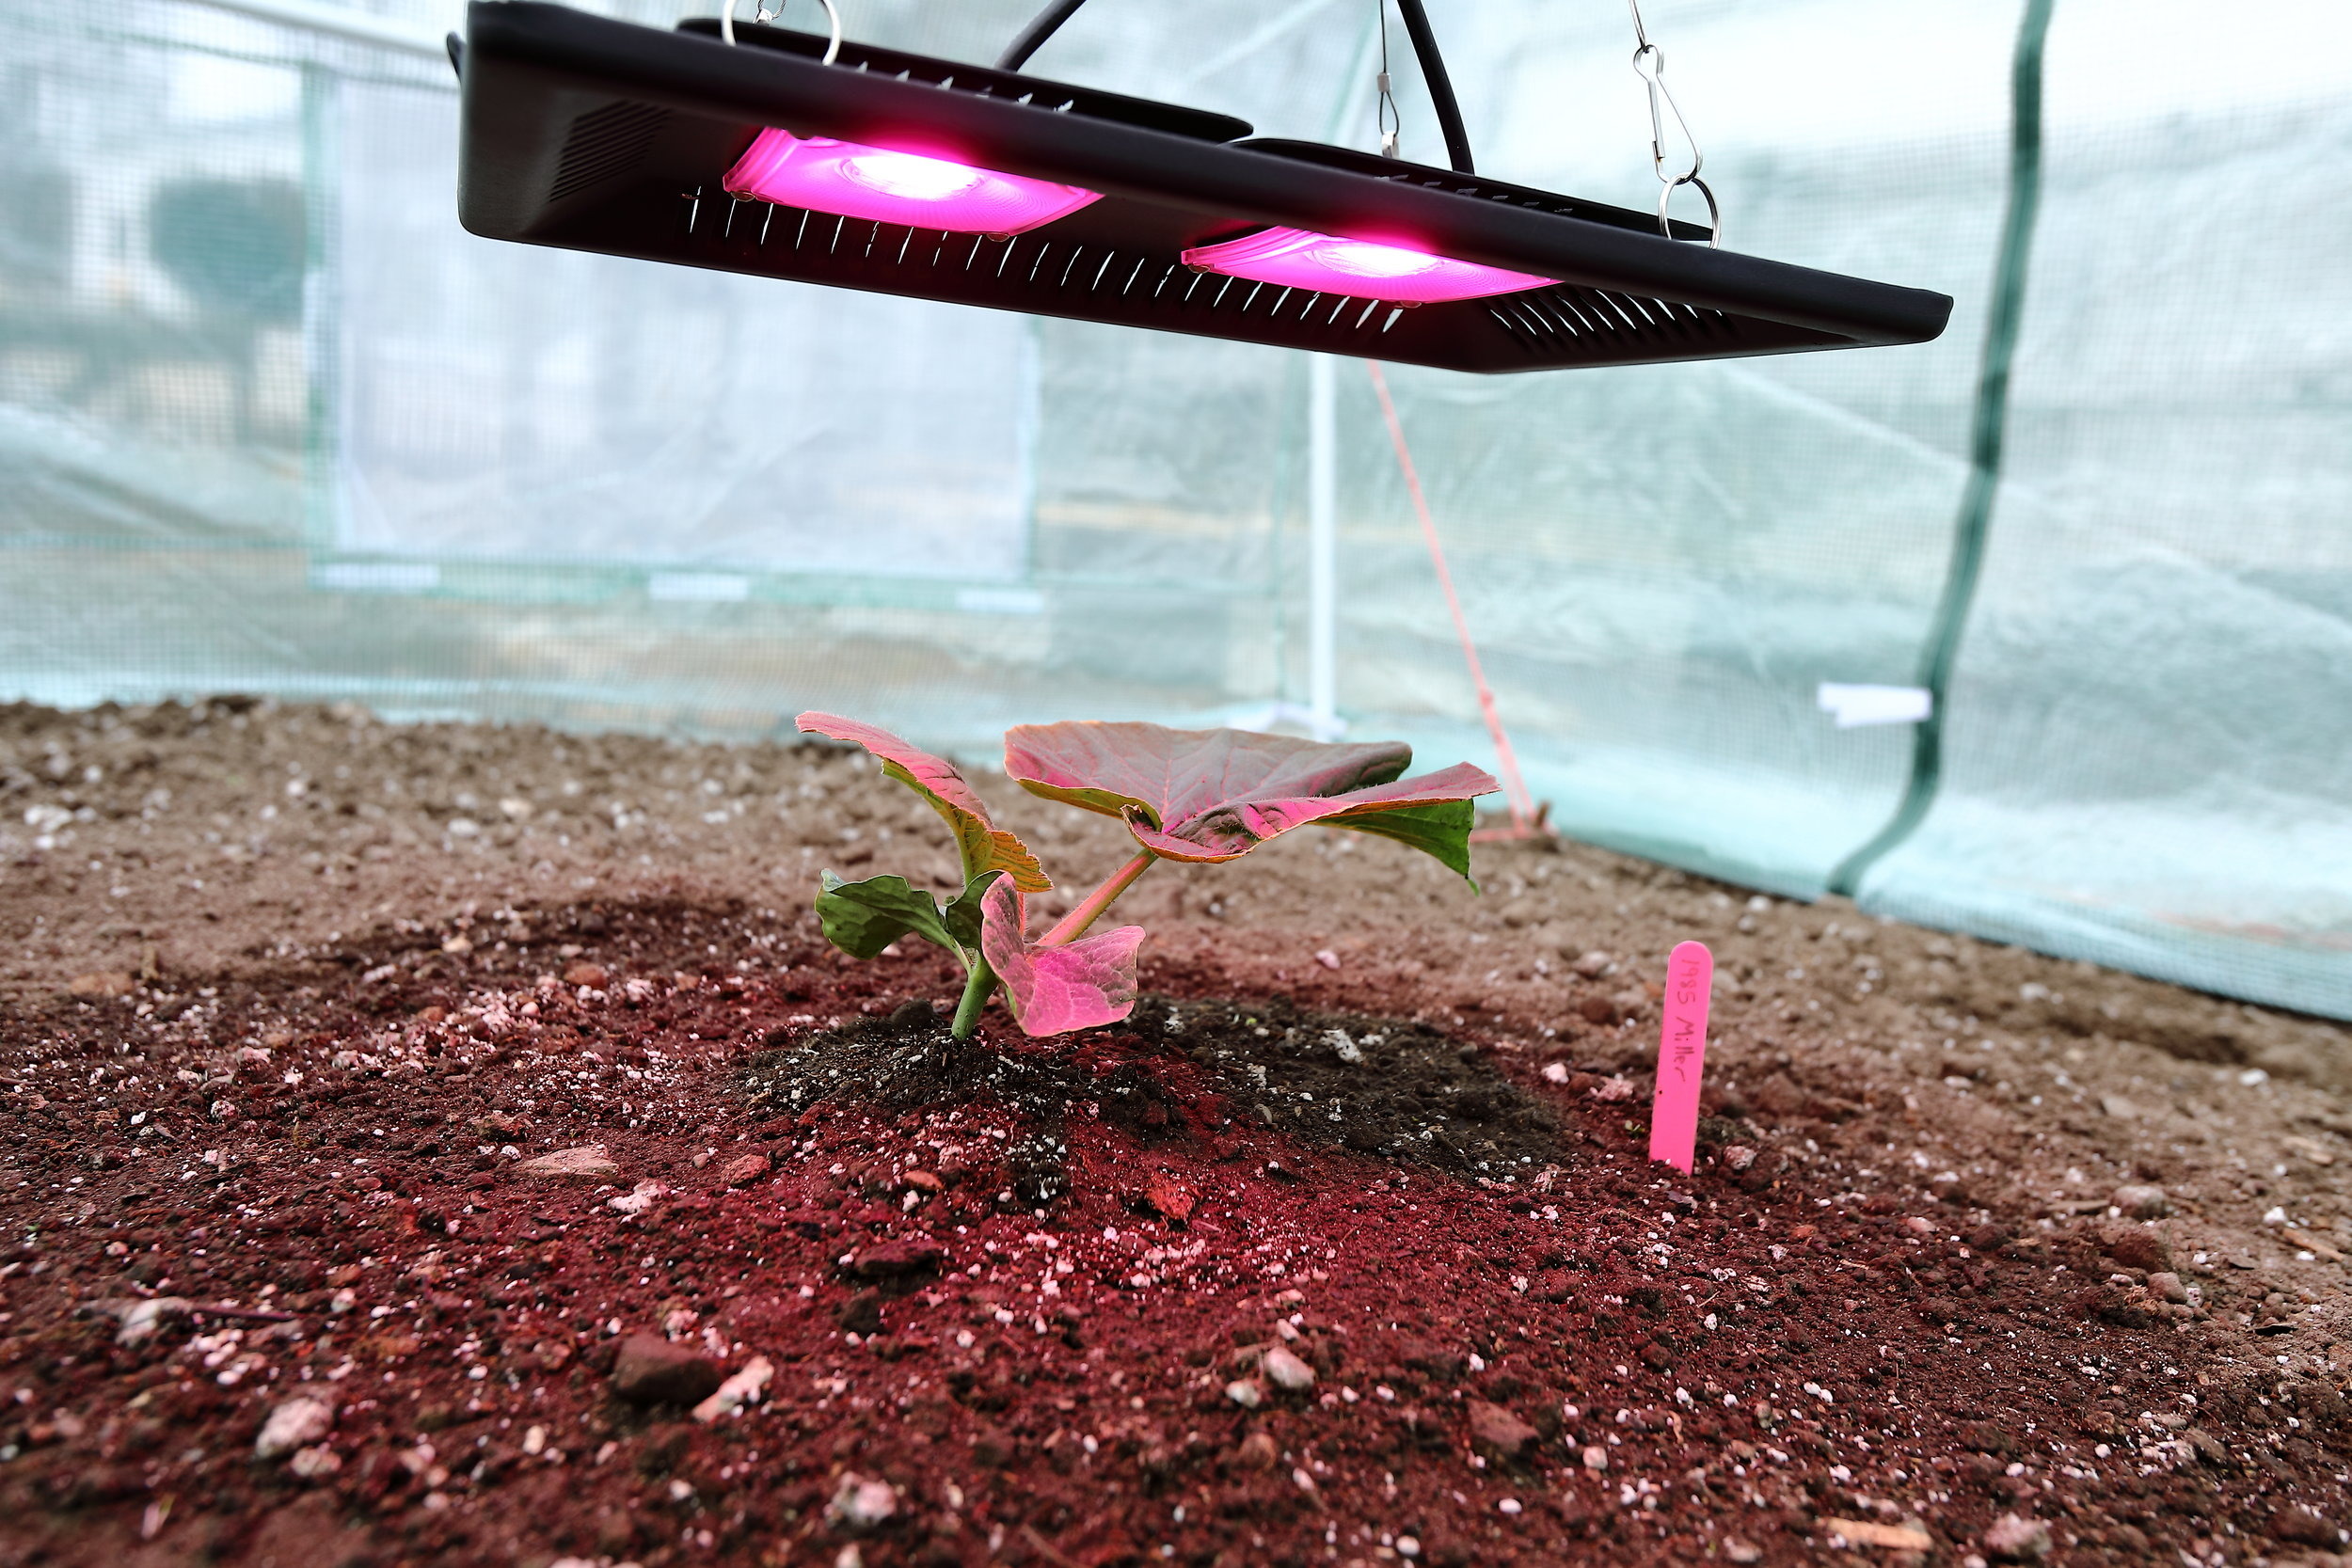 After transplanting, I place an LED light over the plant and keep it on for 16 hours a day.